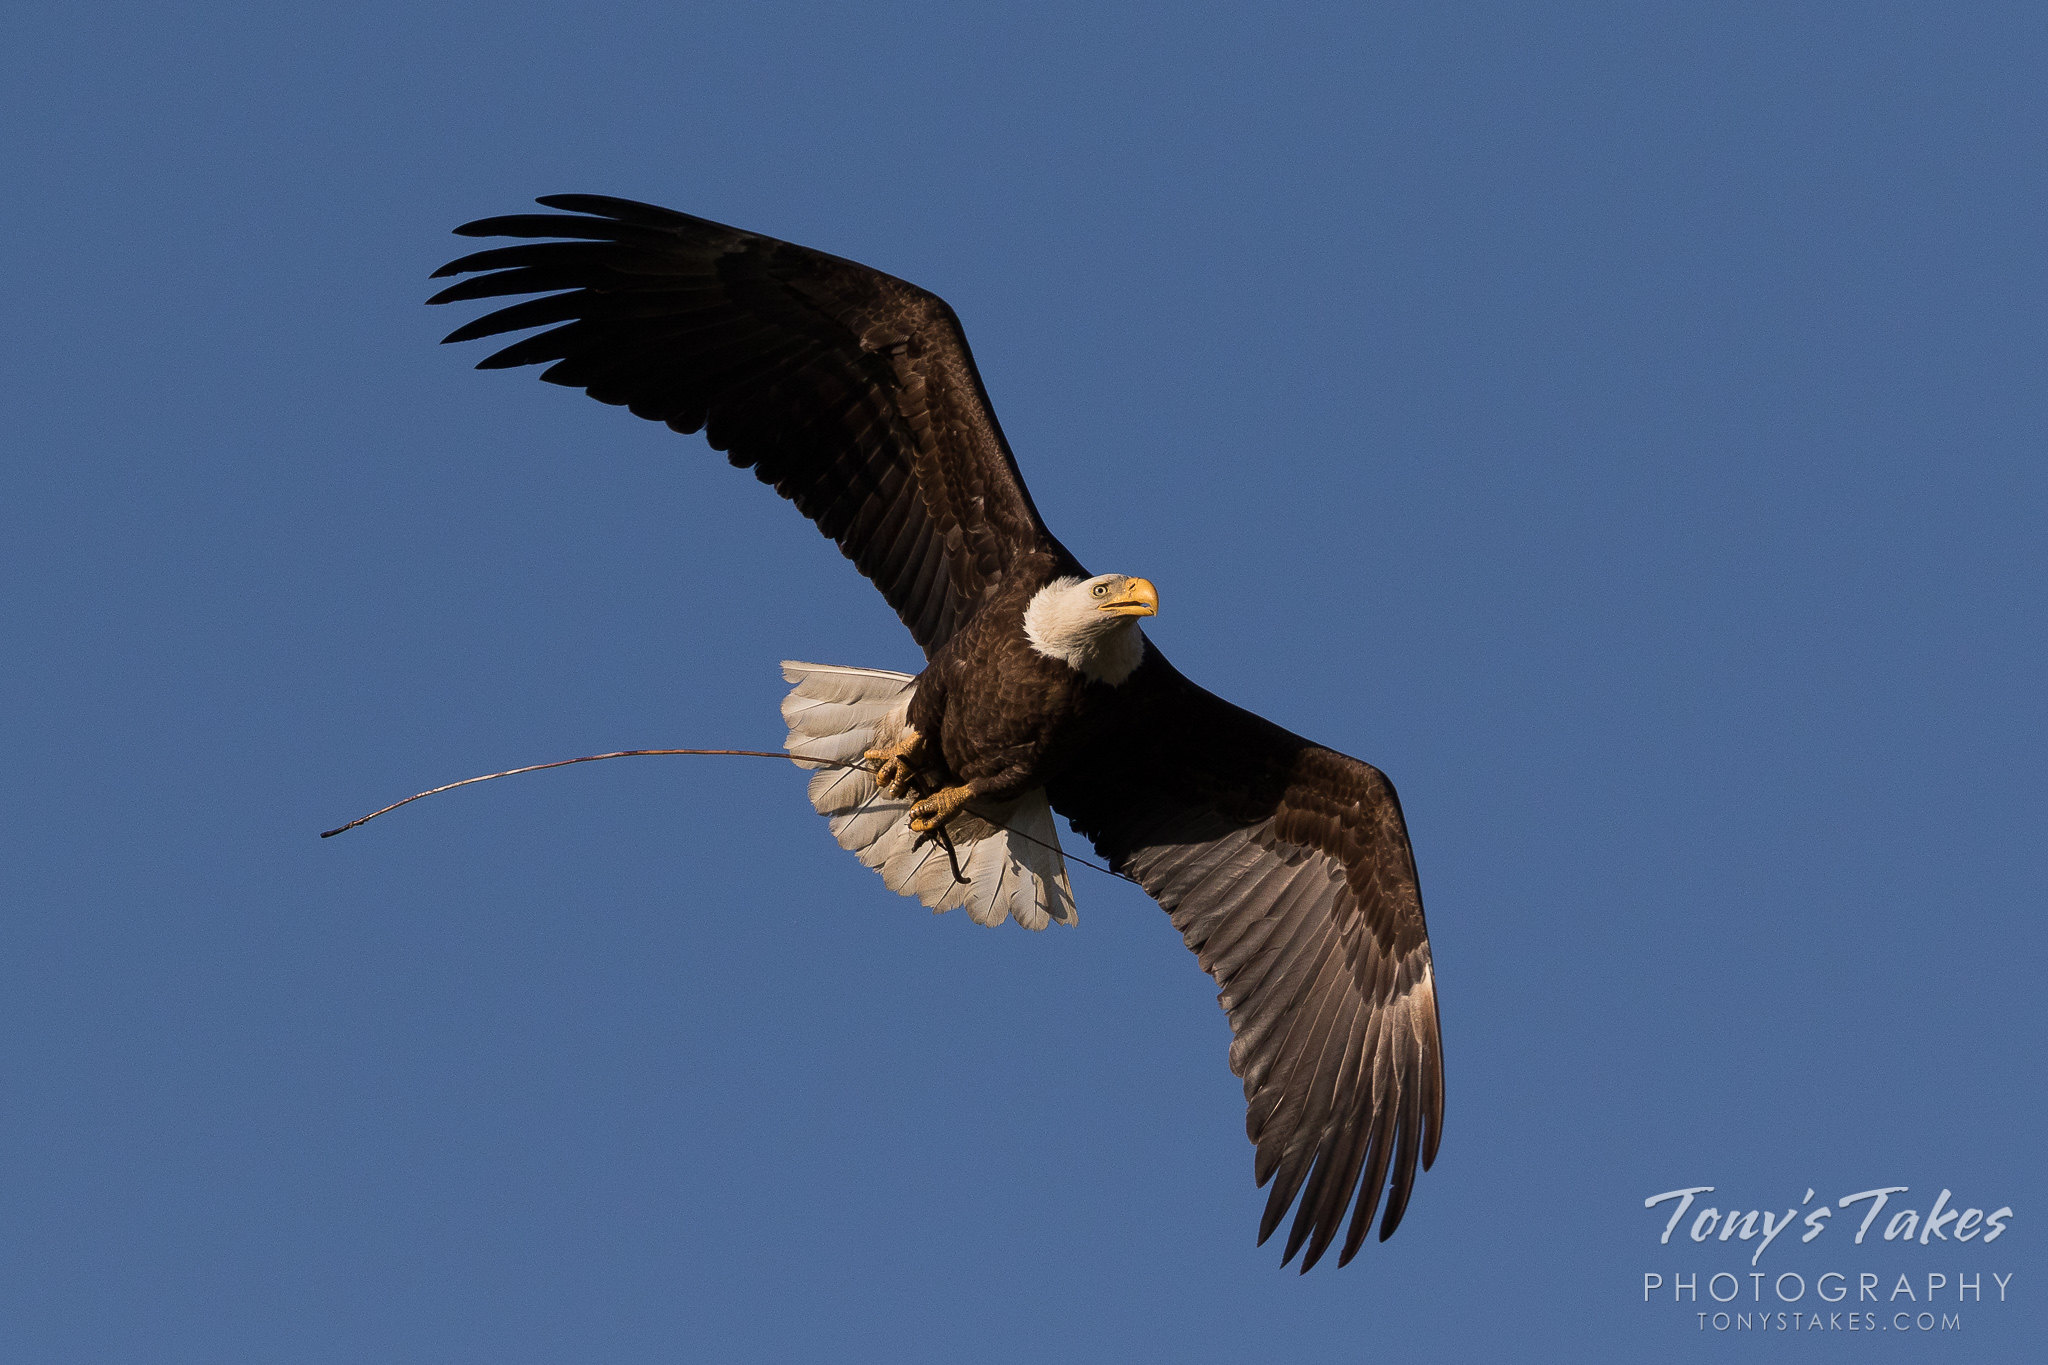 A female Bald Eagle returns to her nest with a small stick. (© Tony's Takes)